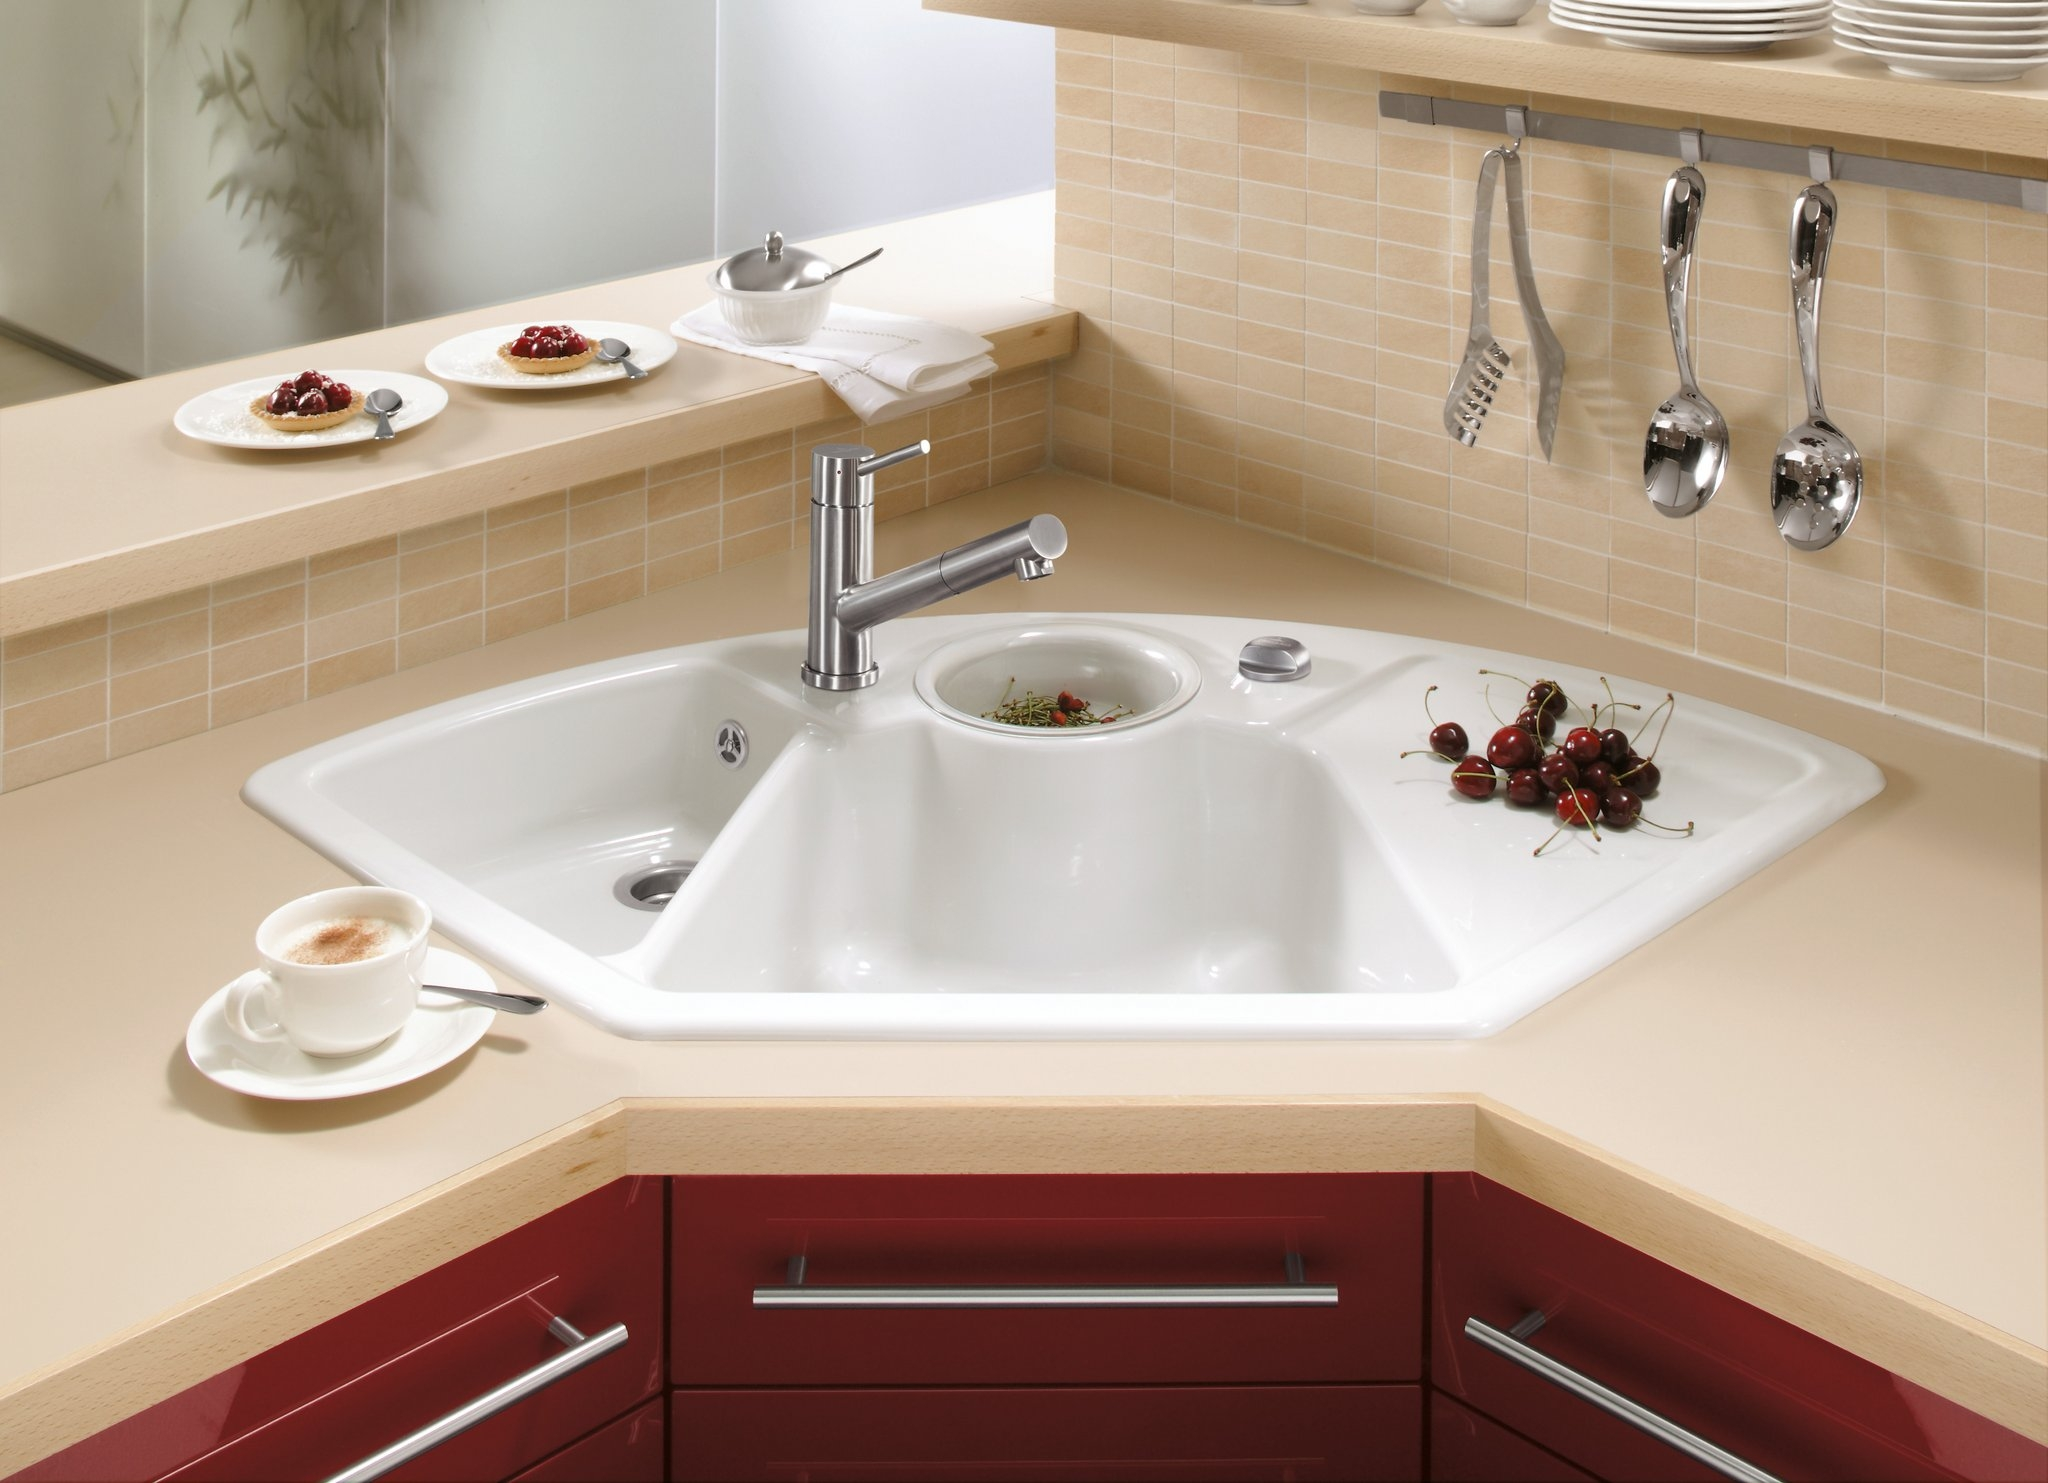 Corner Kitchen Sinks Undermount 2